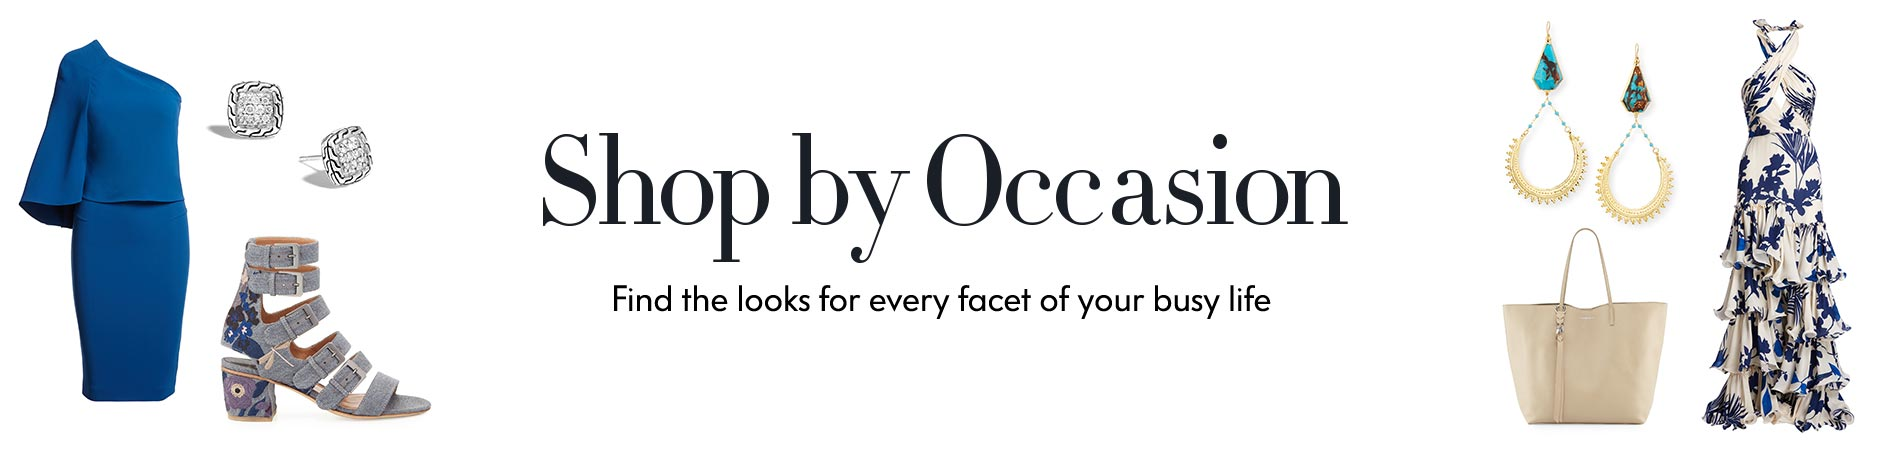 Shop by Occasion: Find the looks for every facet of your busy life